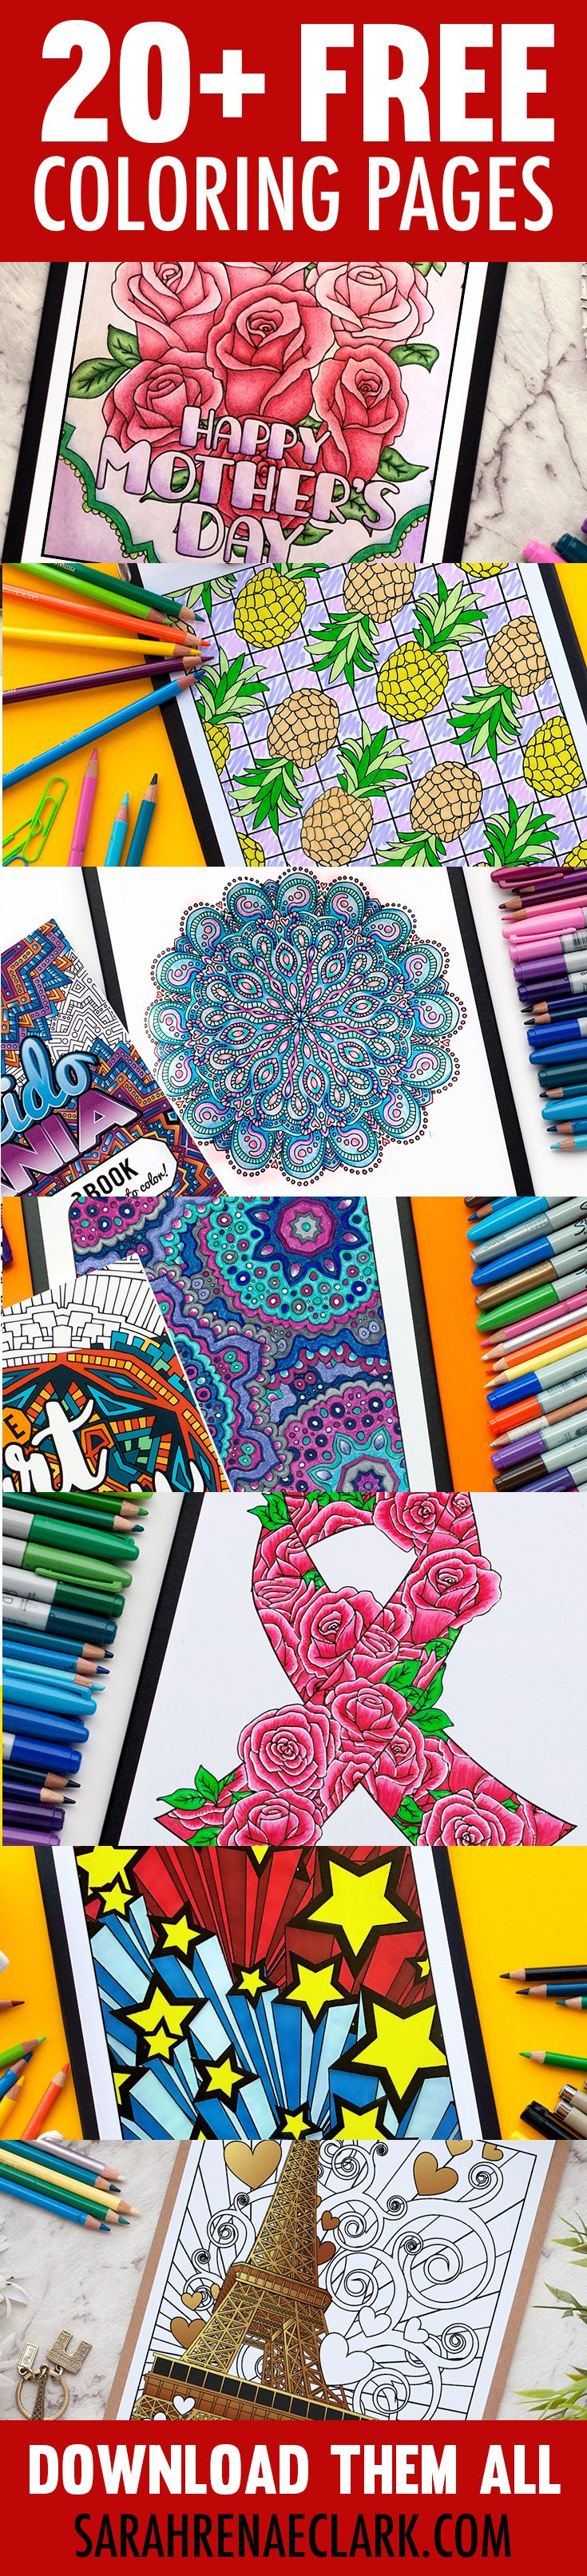 Free coloring pages end of school - 20 Free Coloring Pages For Adults